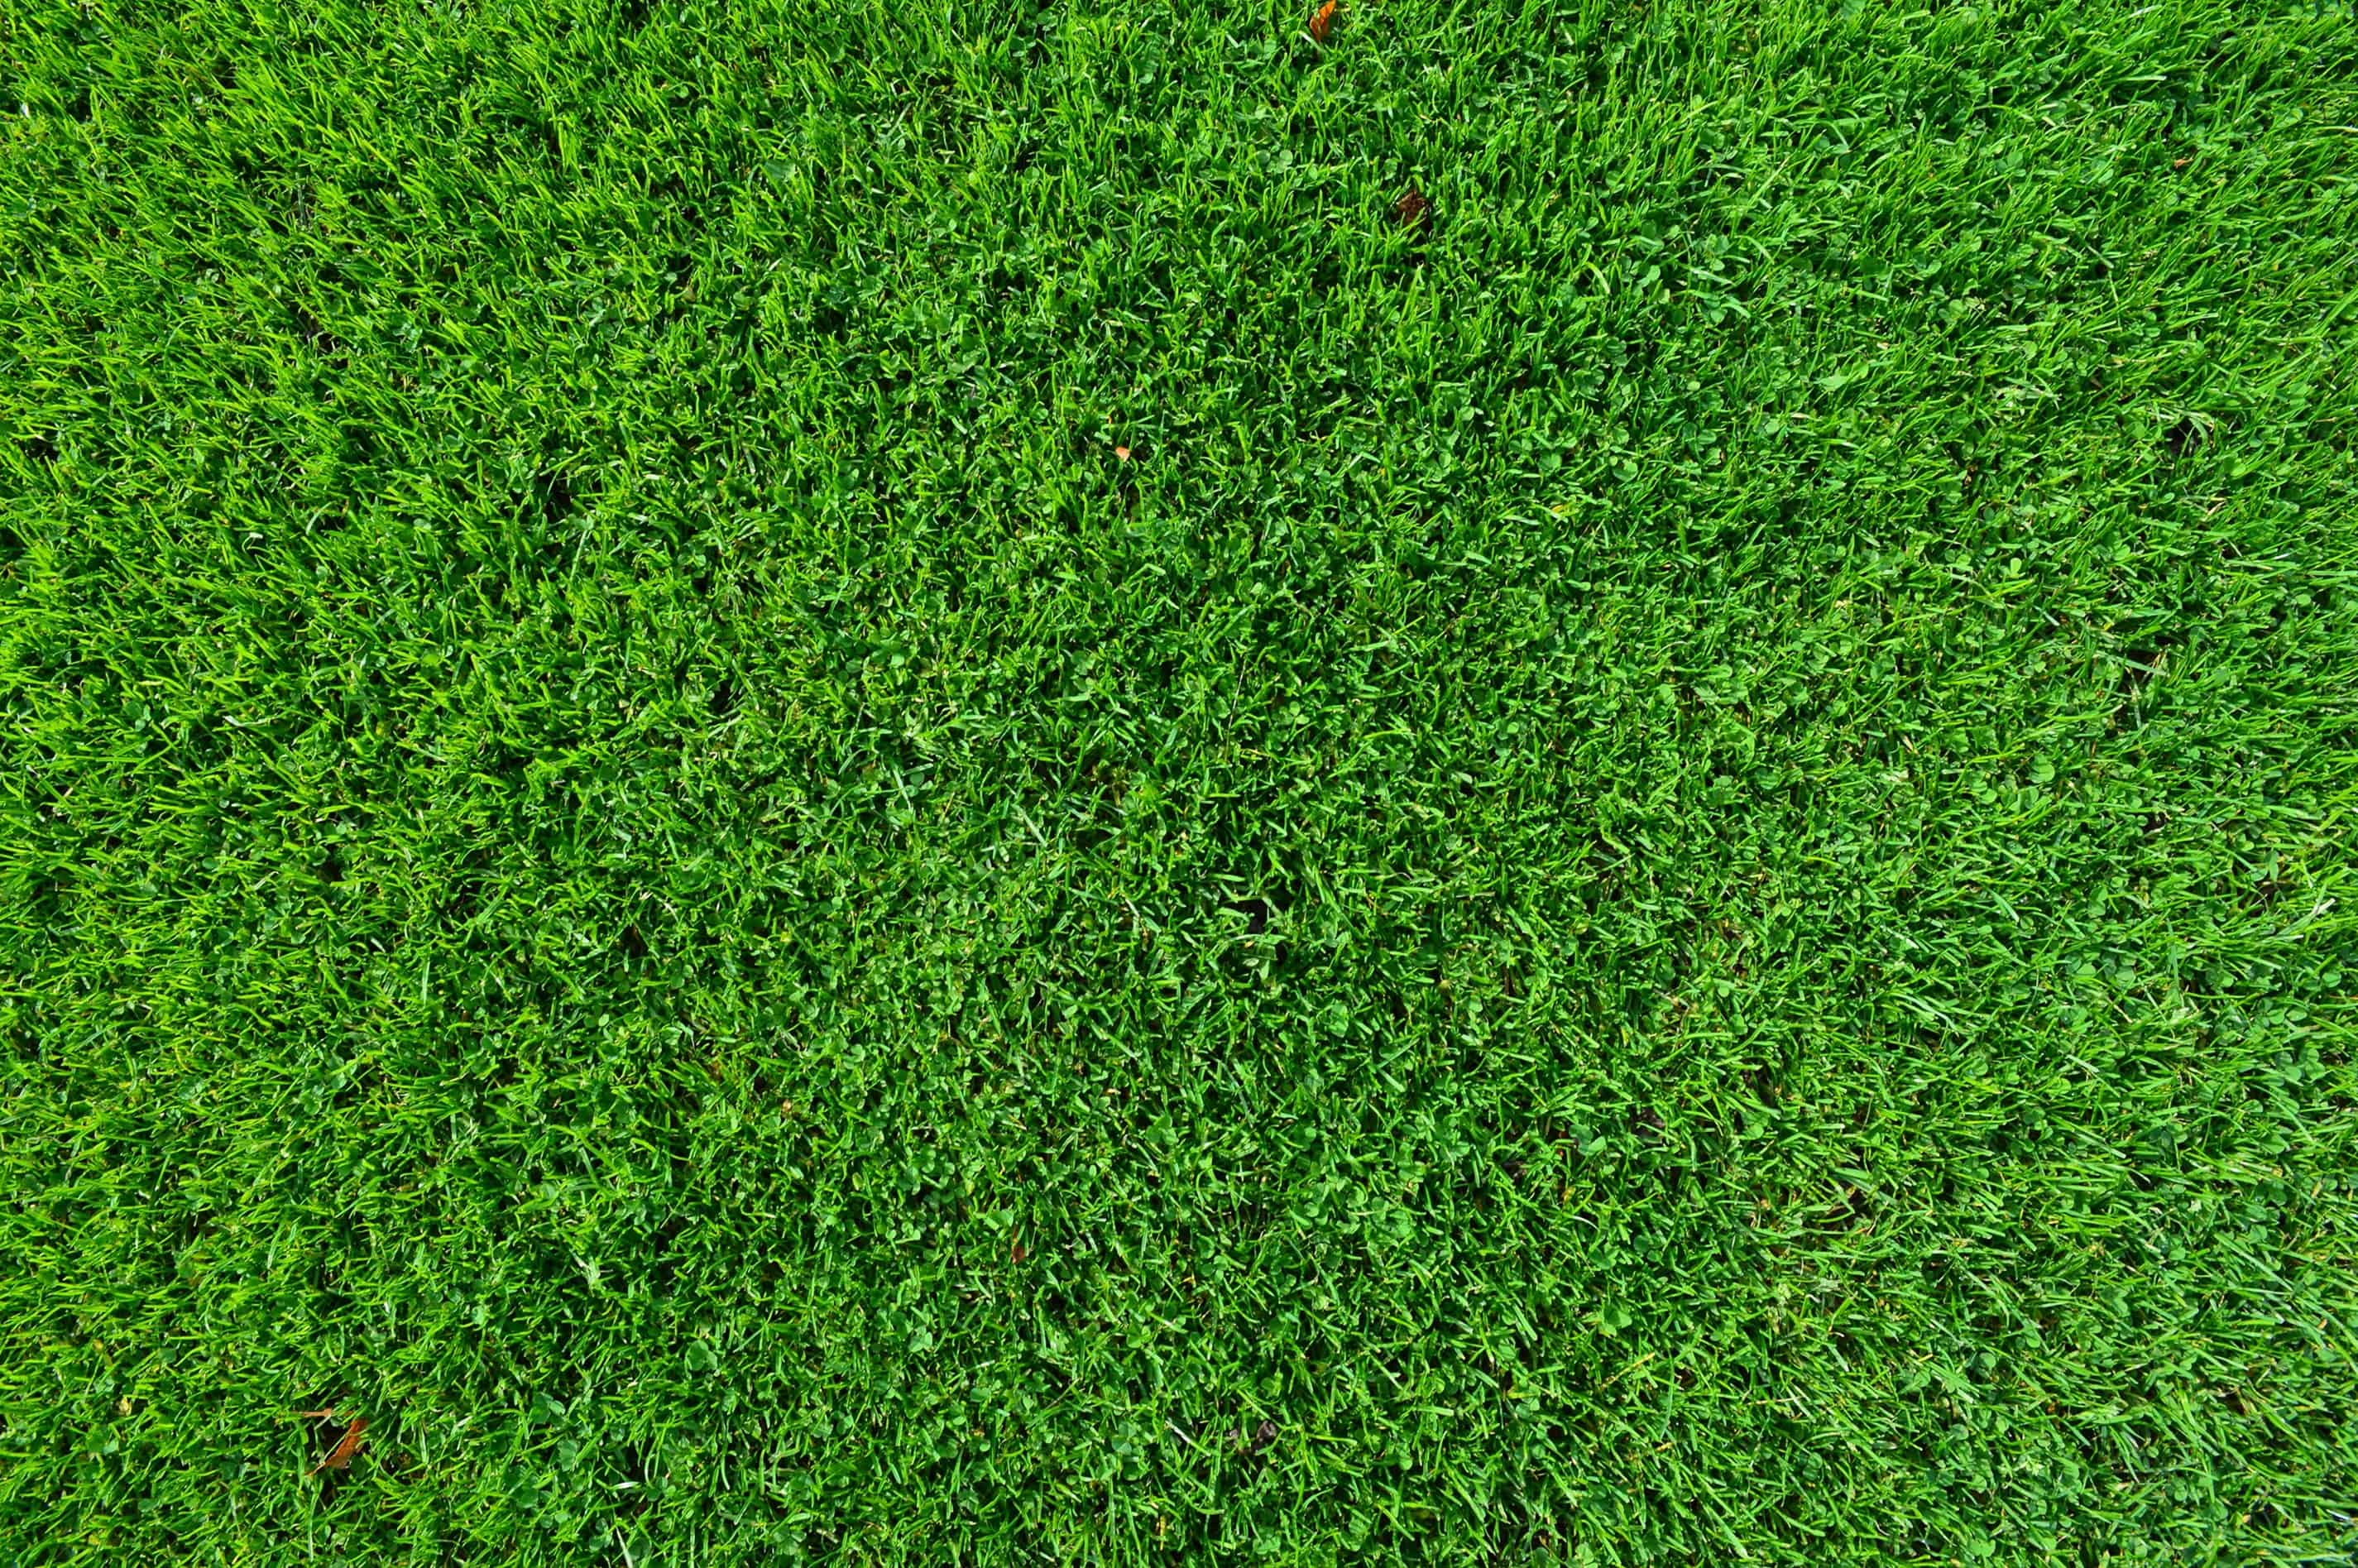 Free picture: leaf, grass, lawn, green grass, green, pattern, plant